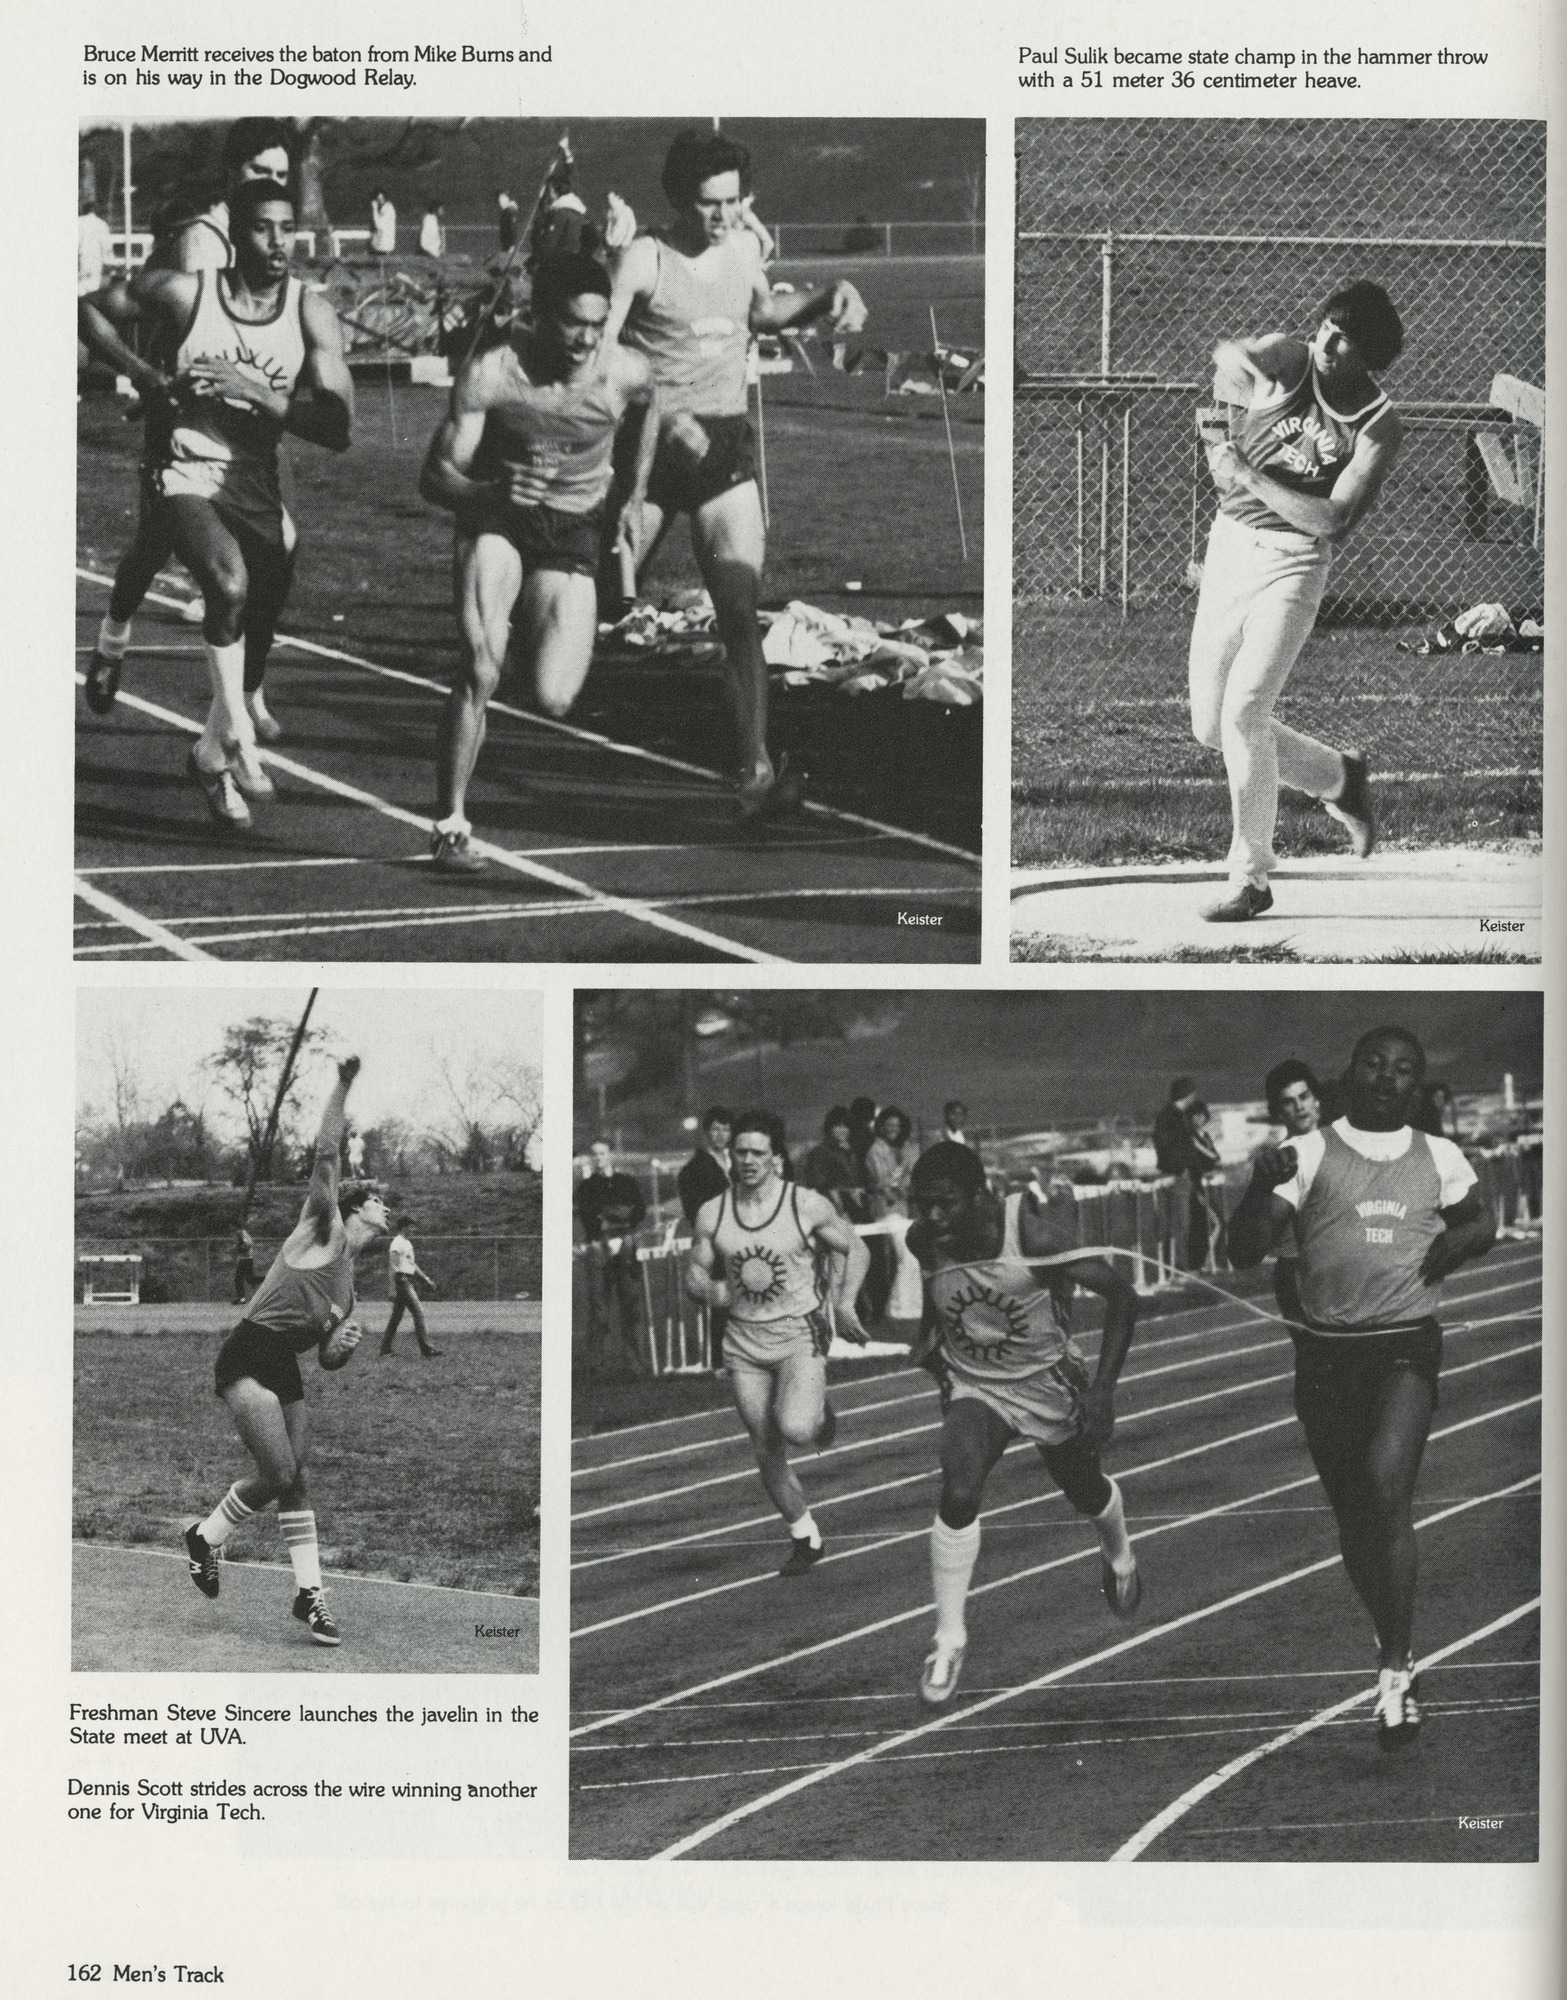 http://spec.lib.vt.edu/pickup/Omeka_upload/Bugle1980_pg162_MensTrack.jpg